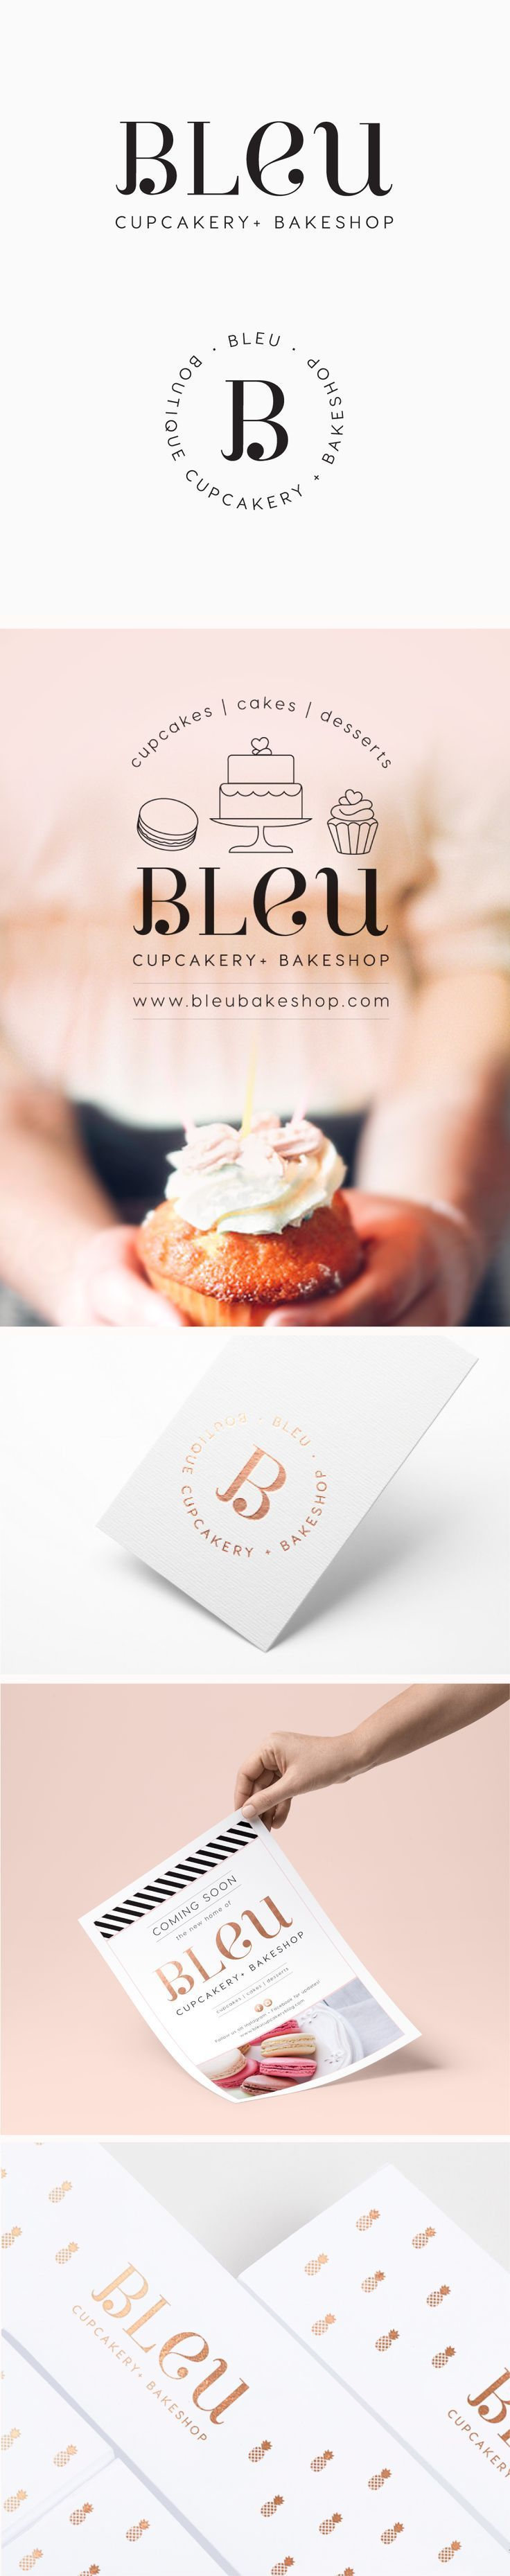 Bleu is a bakery based in Kailua-Kona, Hawaii who specialise in the creation of gourmet cupcakes, cakes and mini deserts.